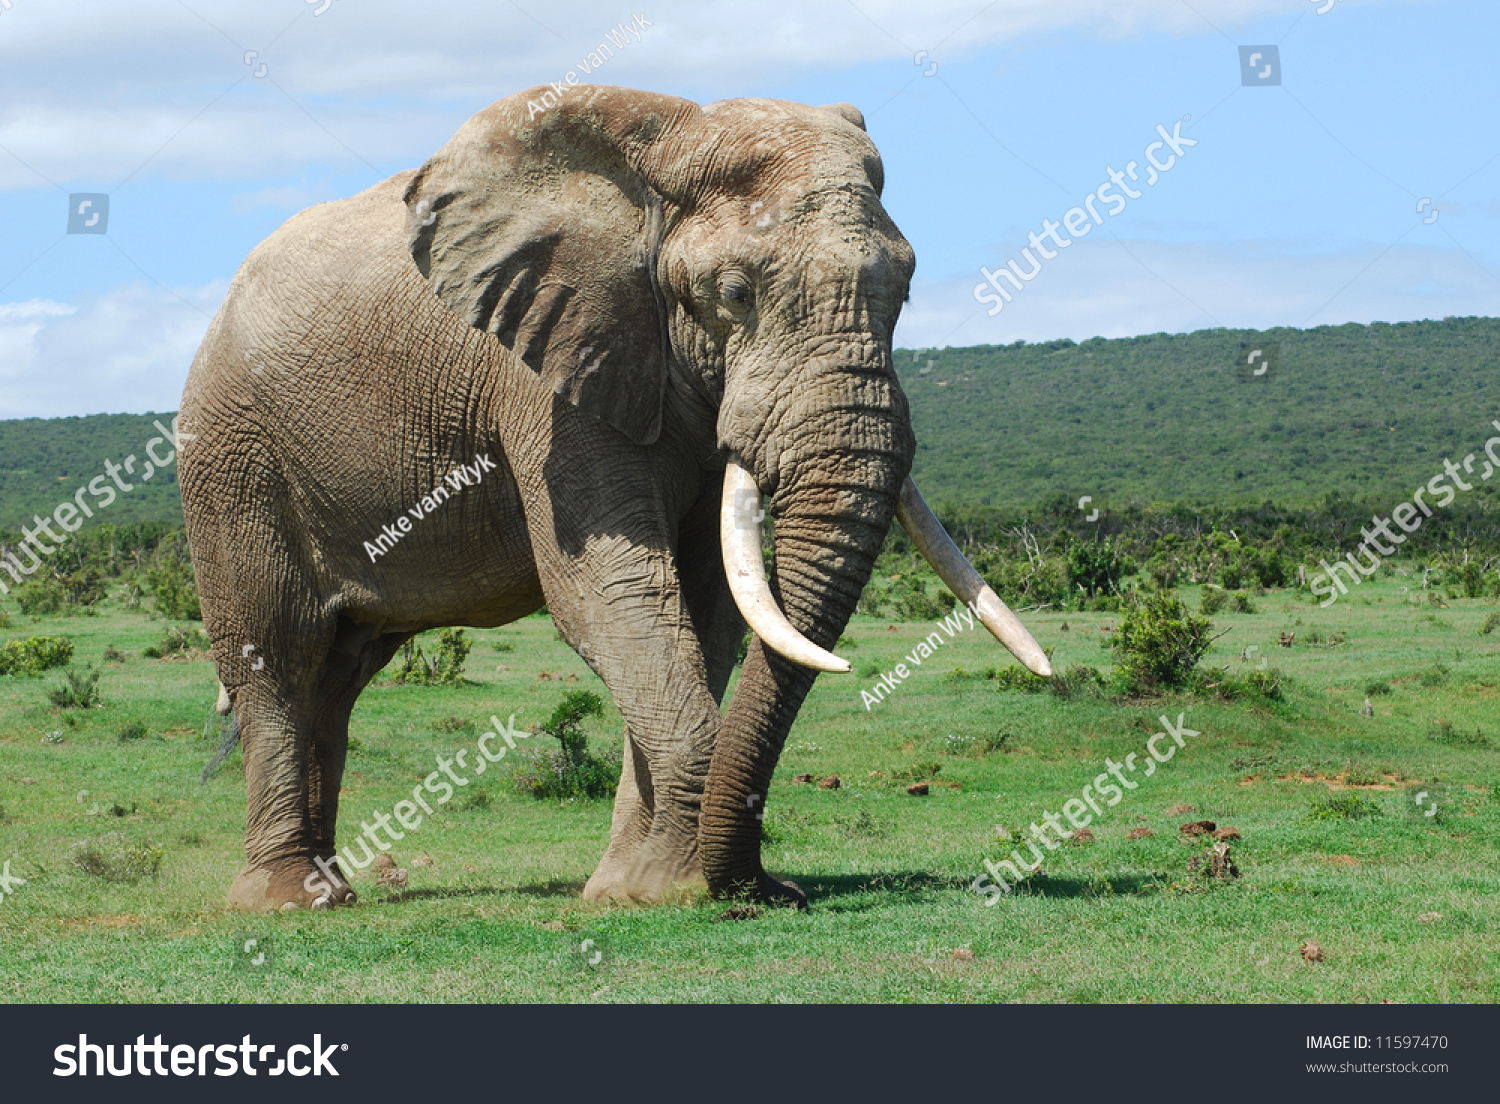 List Of Synonyms And Antonyms Of The Word Elephant Body